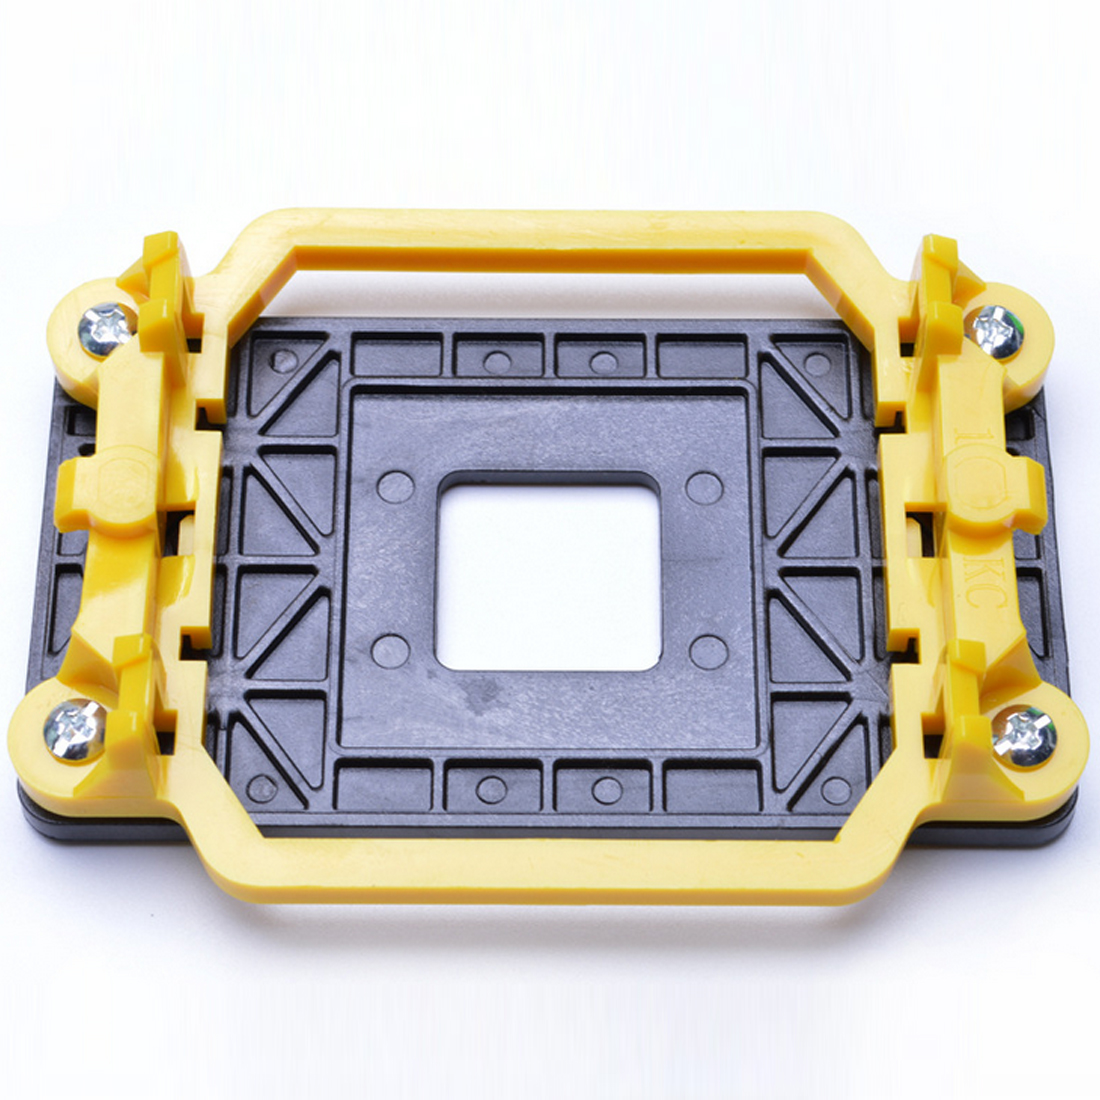 Etmakit Hot Sale CPU Cooler Bracket Motherboard for AMD AM2/AM2+/AM3/AM3+/FM1/FM2/FM2+/940/939 Install the fastening image